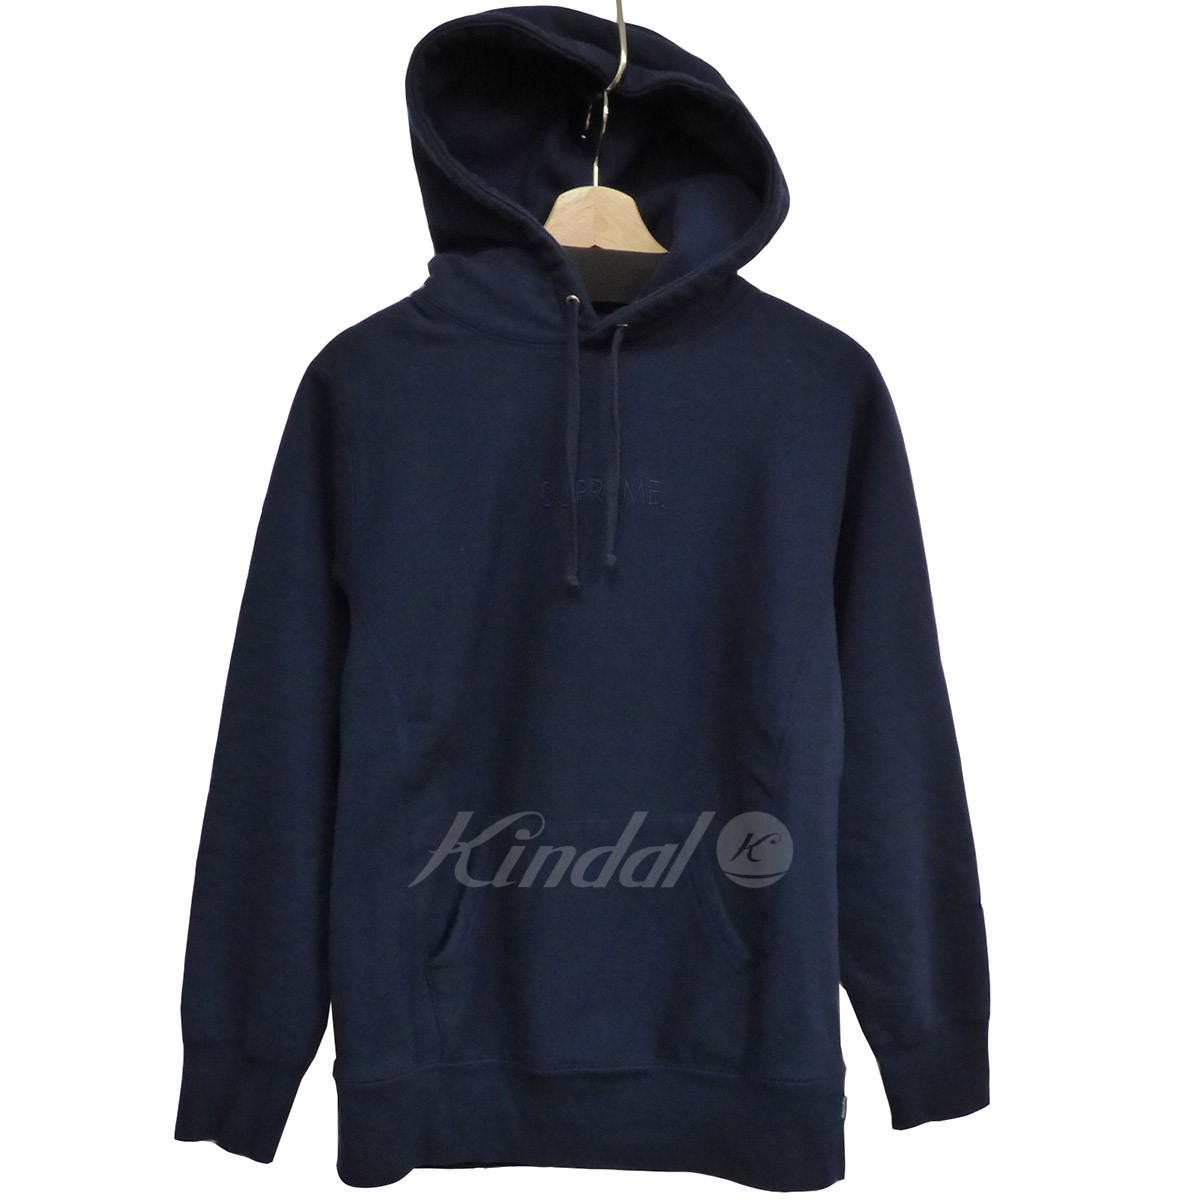 名作 【中古】SUPREME 15AW Tanal【002418】 Embroidered【SK1364】 Hooded Sweatshirtフーディー 15AW【送料無料】【002418】【SK1364】, キャバ:20c90bf4 --- portalitab2.dominiotemporario.com